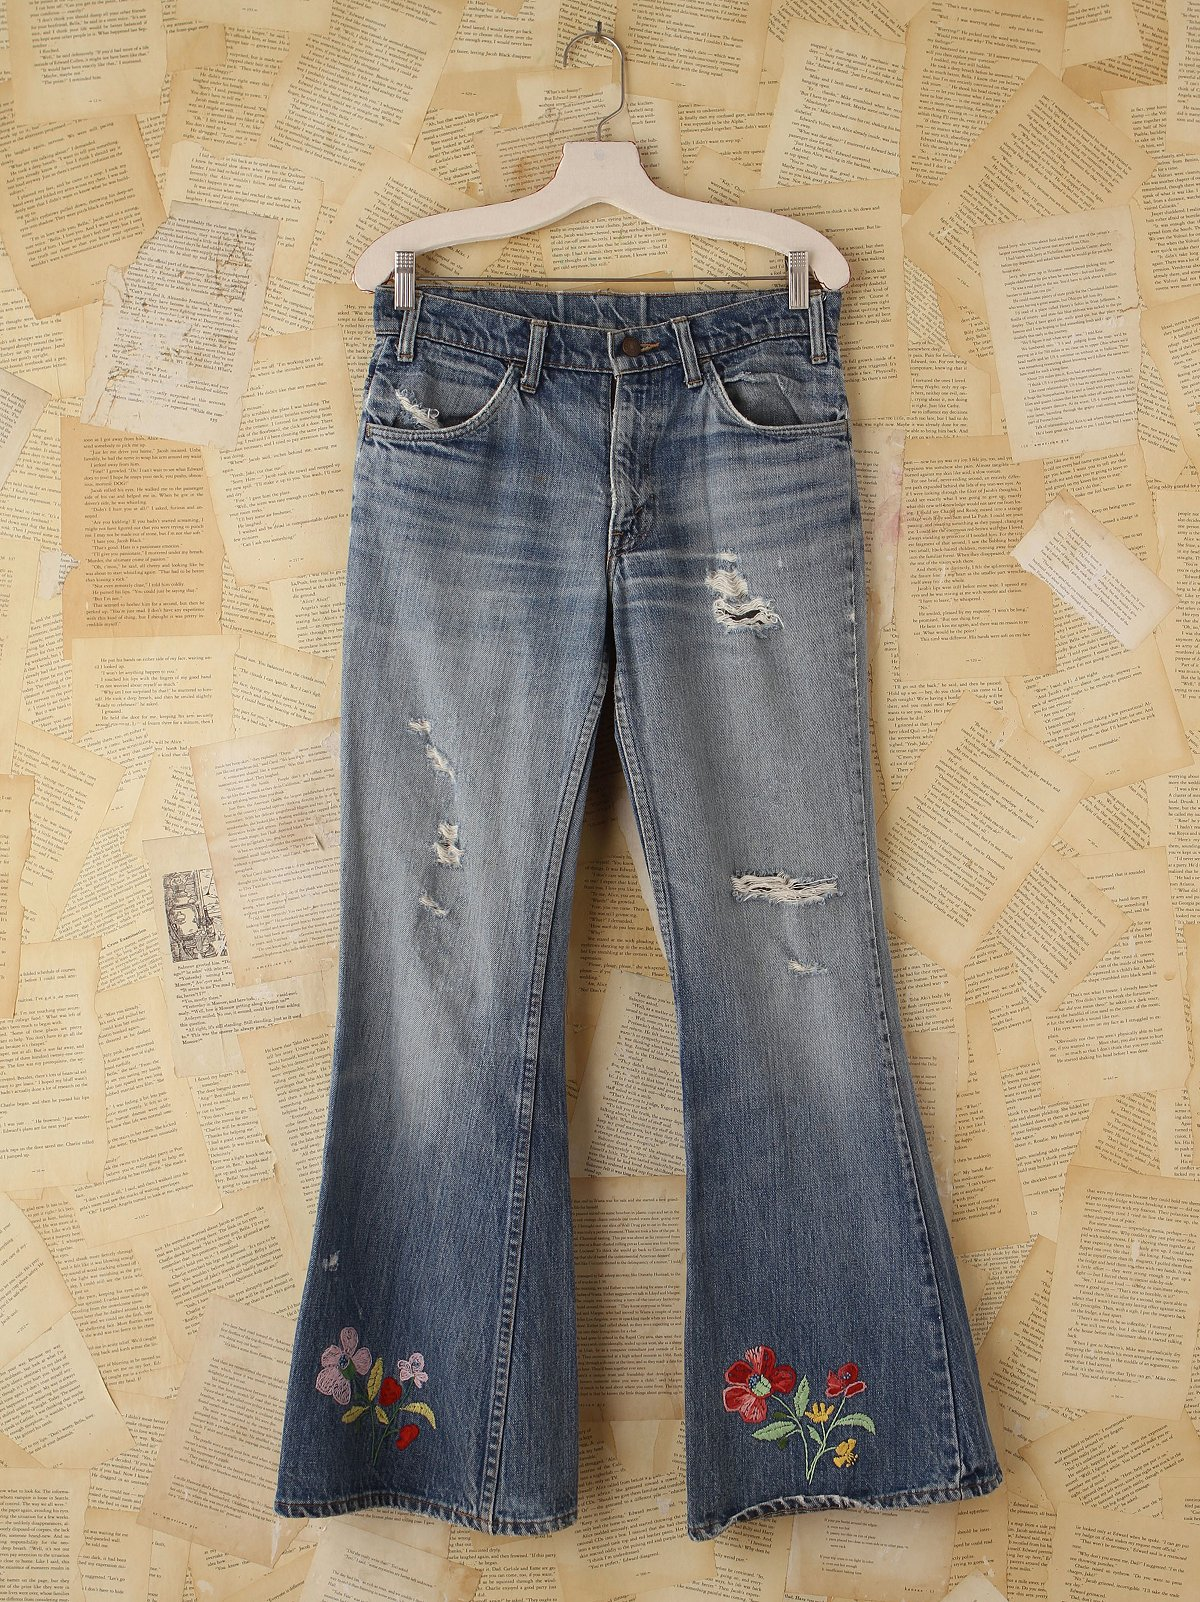 Vintage Embroidered Levi's 517 Jeans